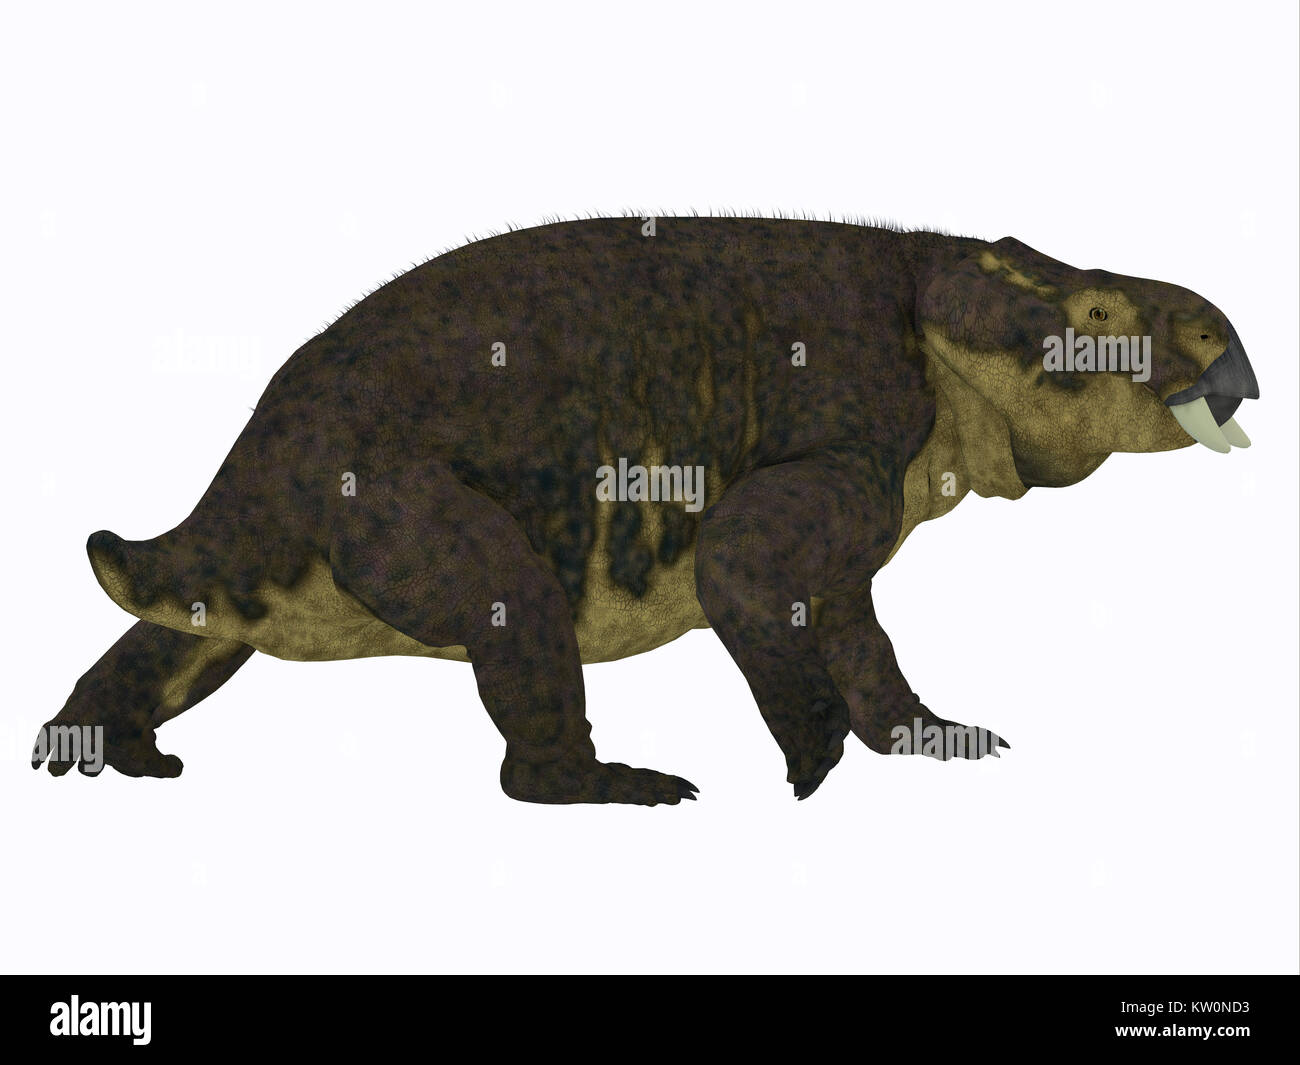 Placerias Dinosaur Tail - Placerias was a herbivorous dicynodont dinosaur that lived in Arizona, USA in the Triassic - Stock Image